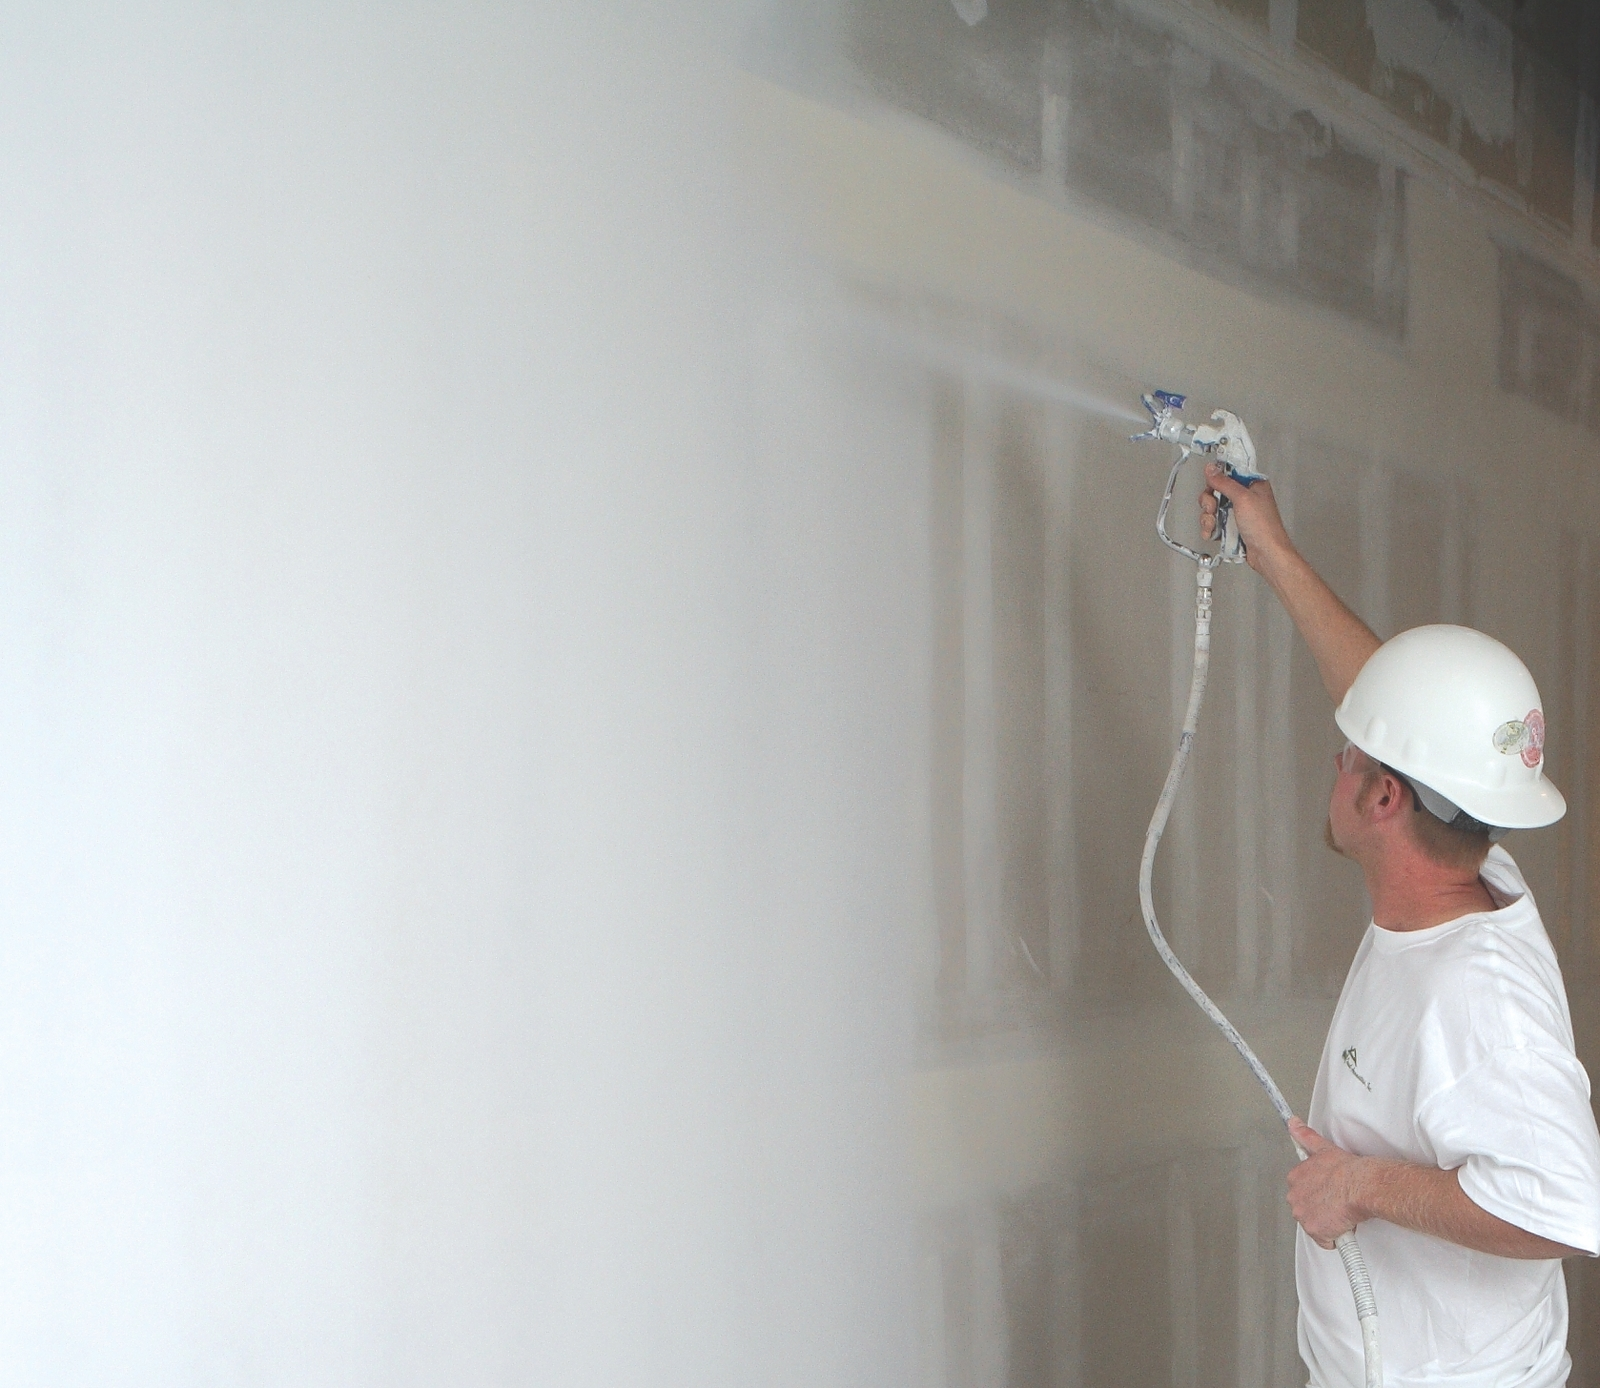 Applying a level 5 finish on an interior wall